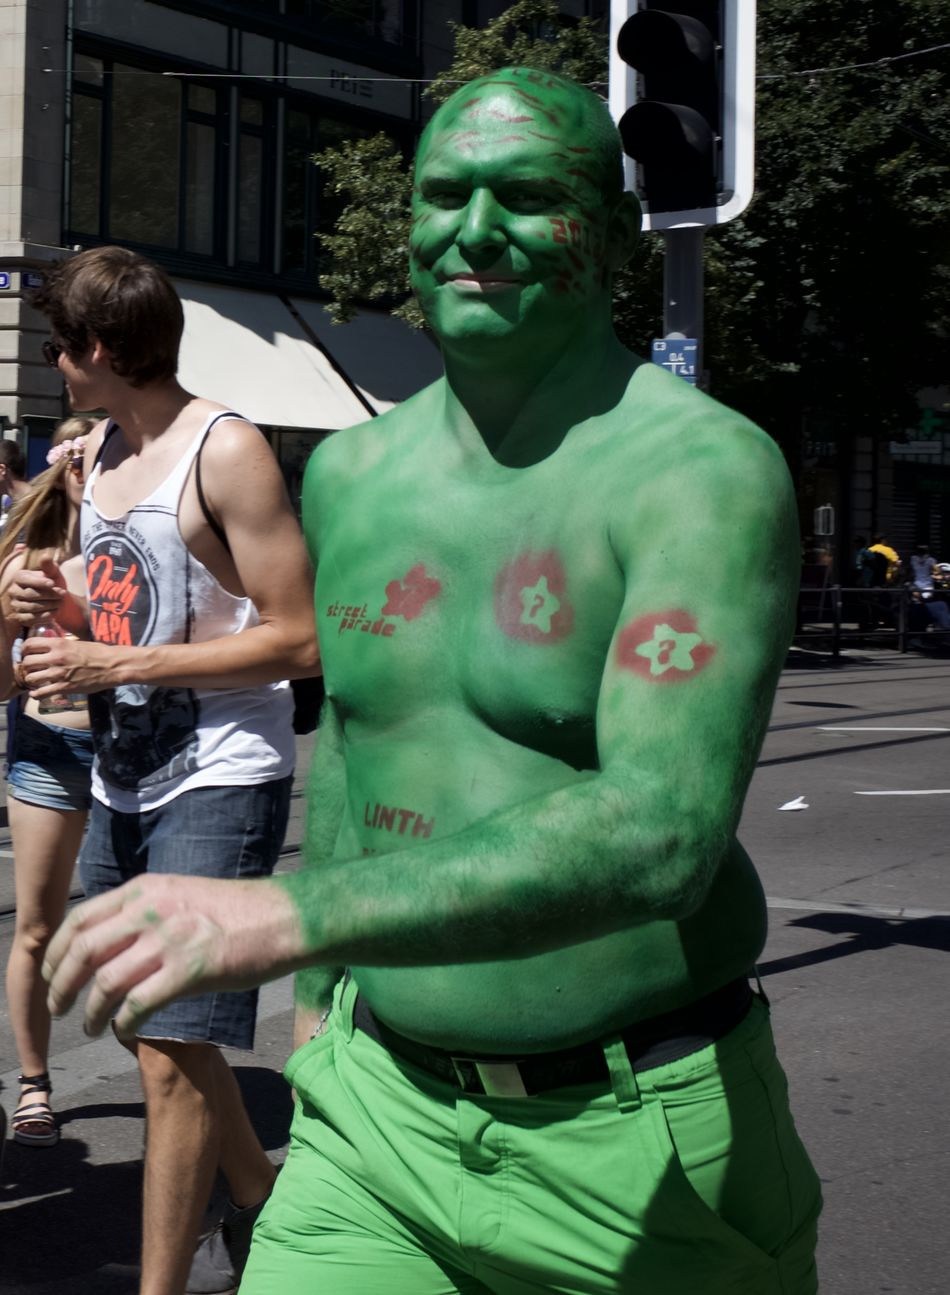 had a break to view to the people going to the street parade 2016 in Zürich Disguised Enjoying Life Enjoying The Sun Fun Funtimes Hello World Rave Raveparty Ricohgr2 Streetparade Zurich Streetparade2016 Sun-fun Switzerland_2016 Zürich Festival Fever Leisure Activity Festival Season